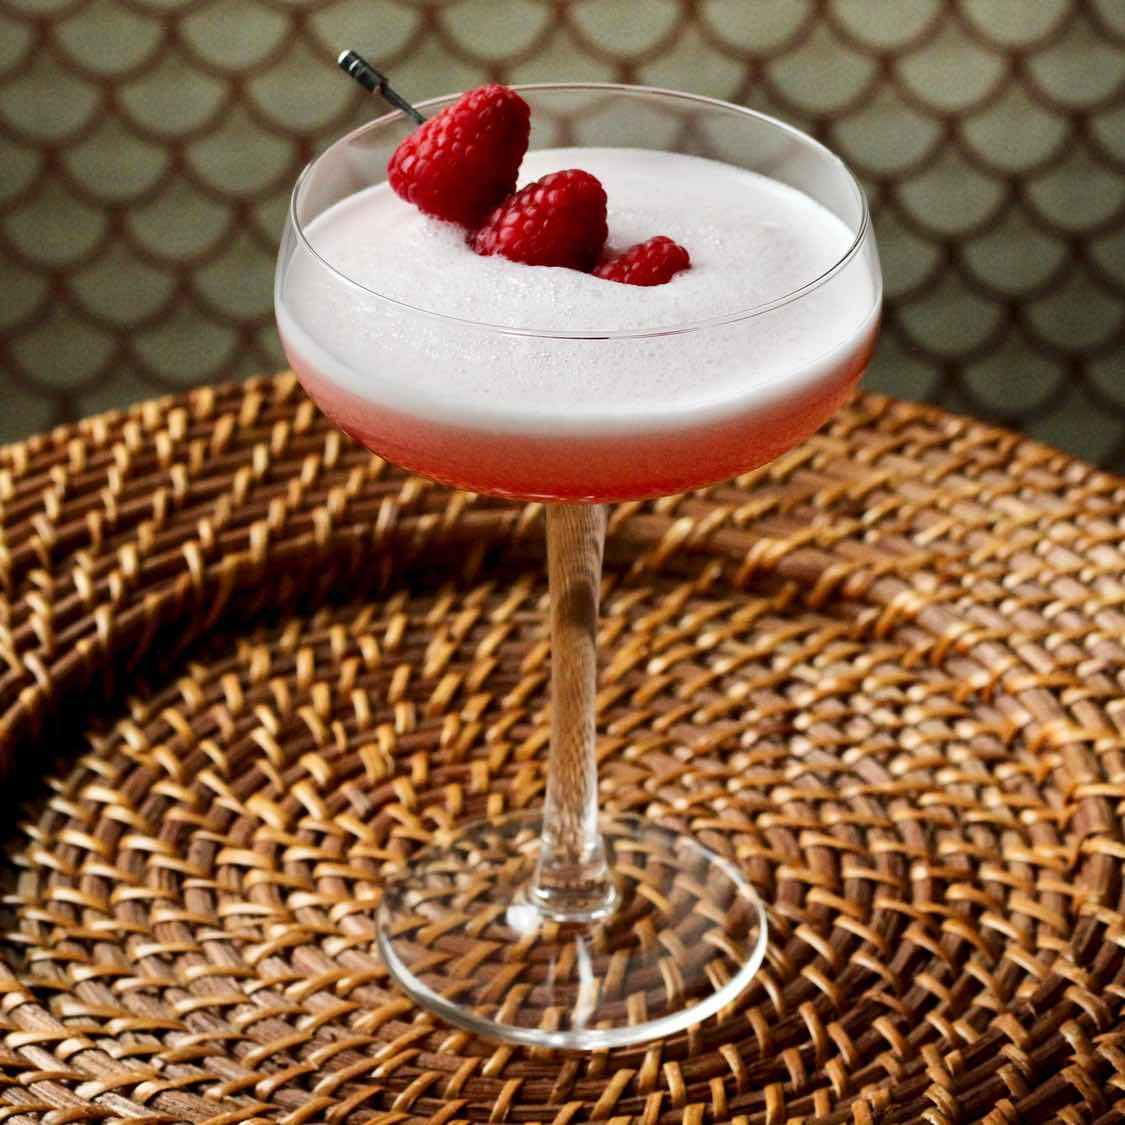 Clover Club cocktail - Classic 1917 Recipe From The Ideal Bartender